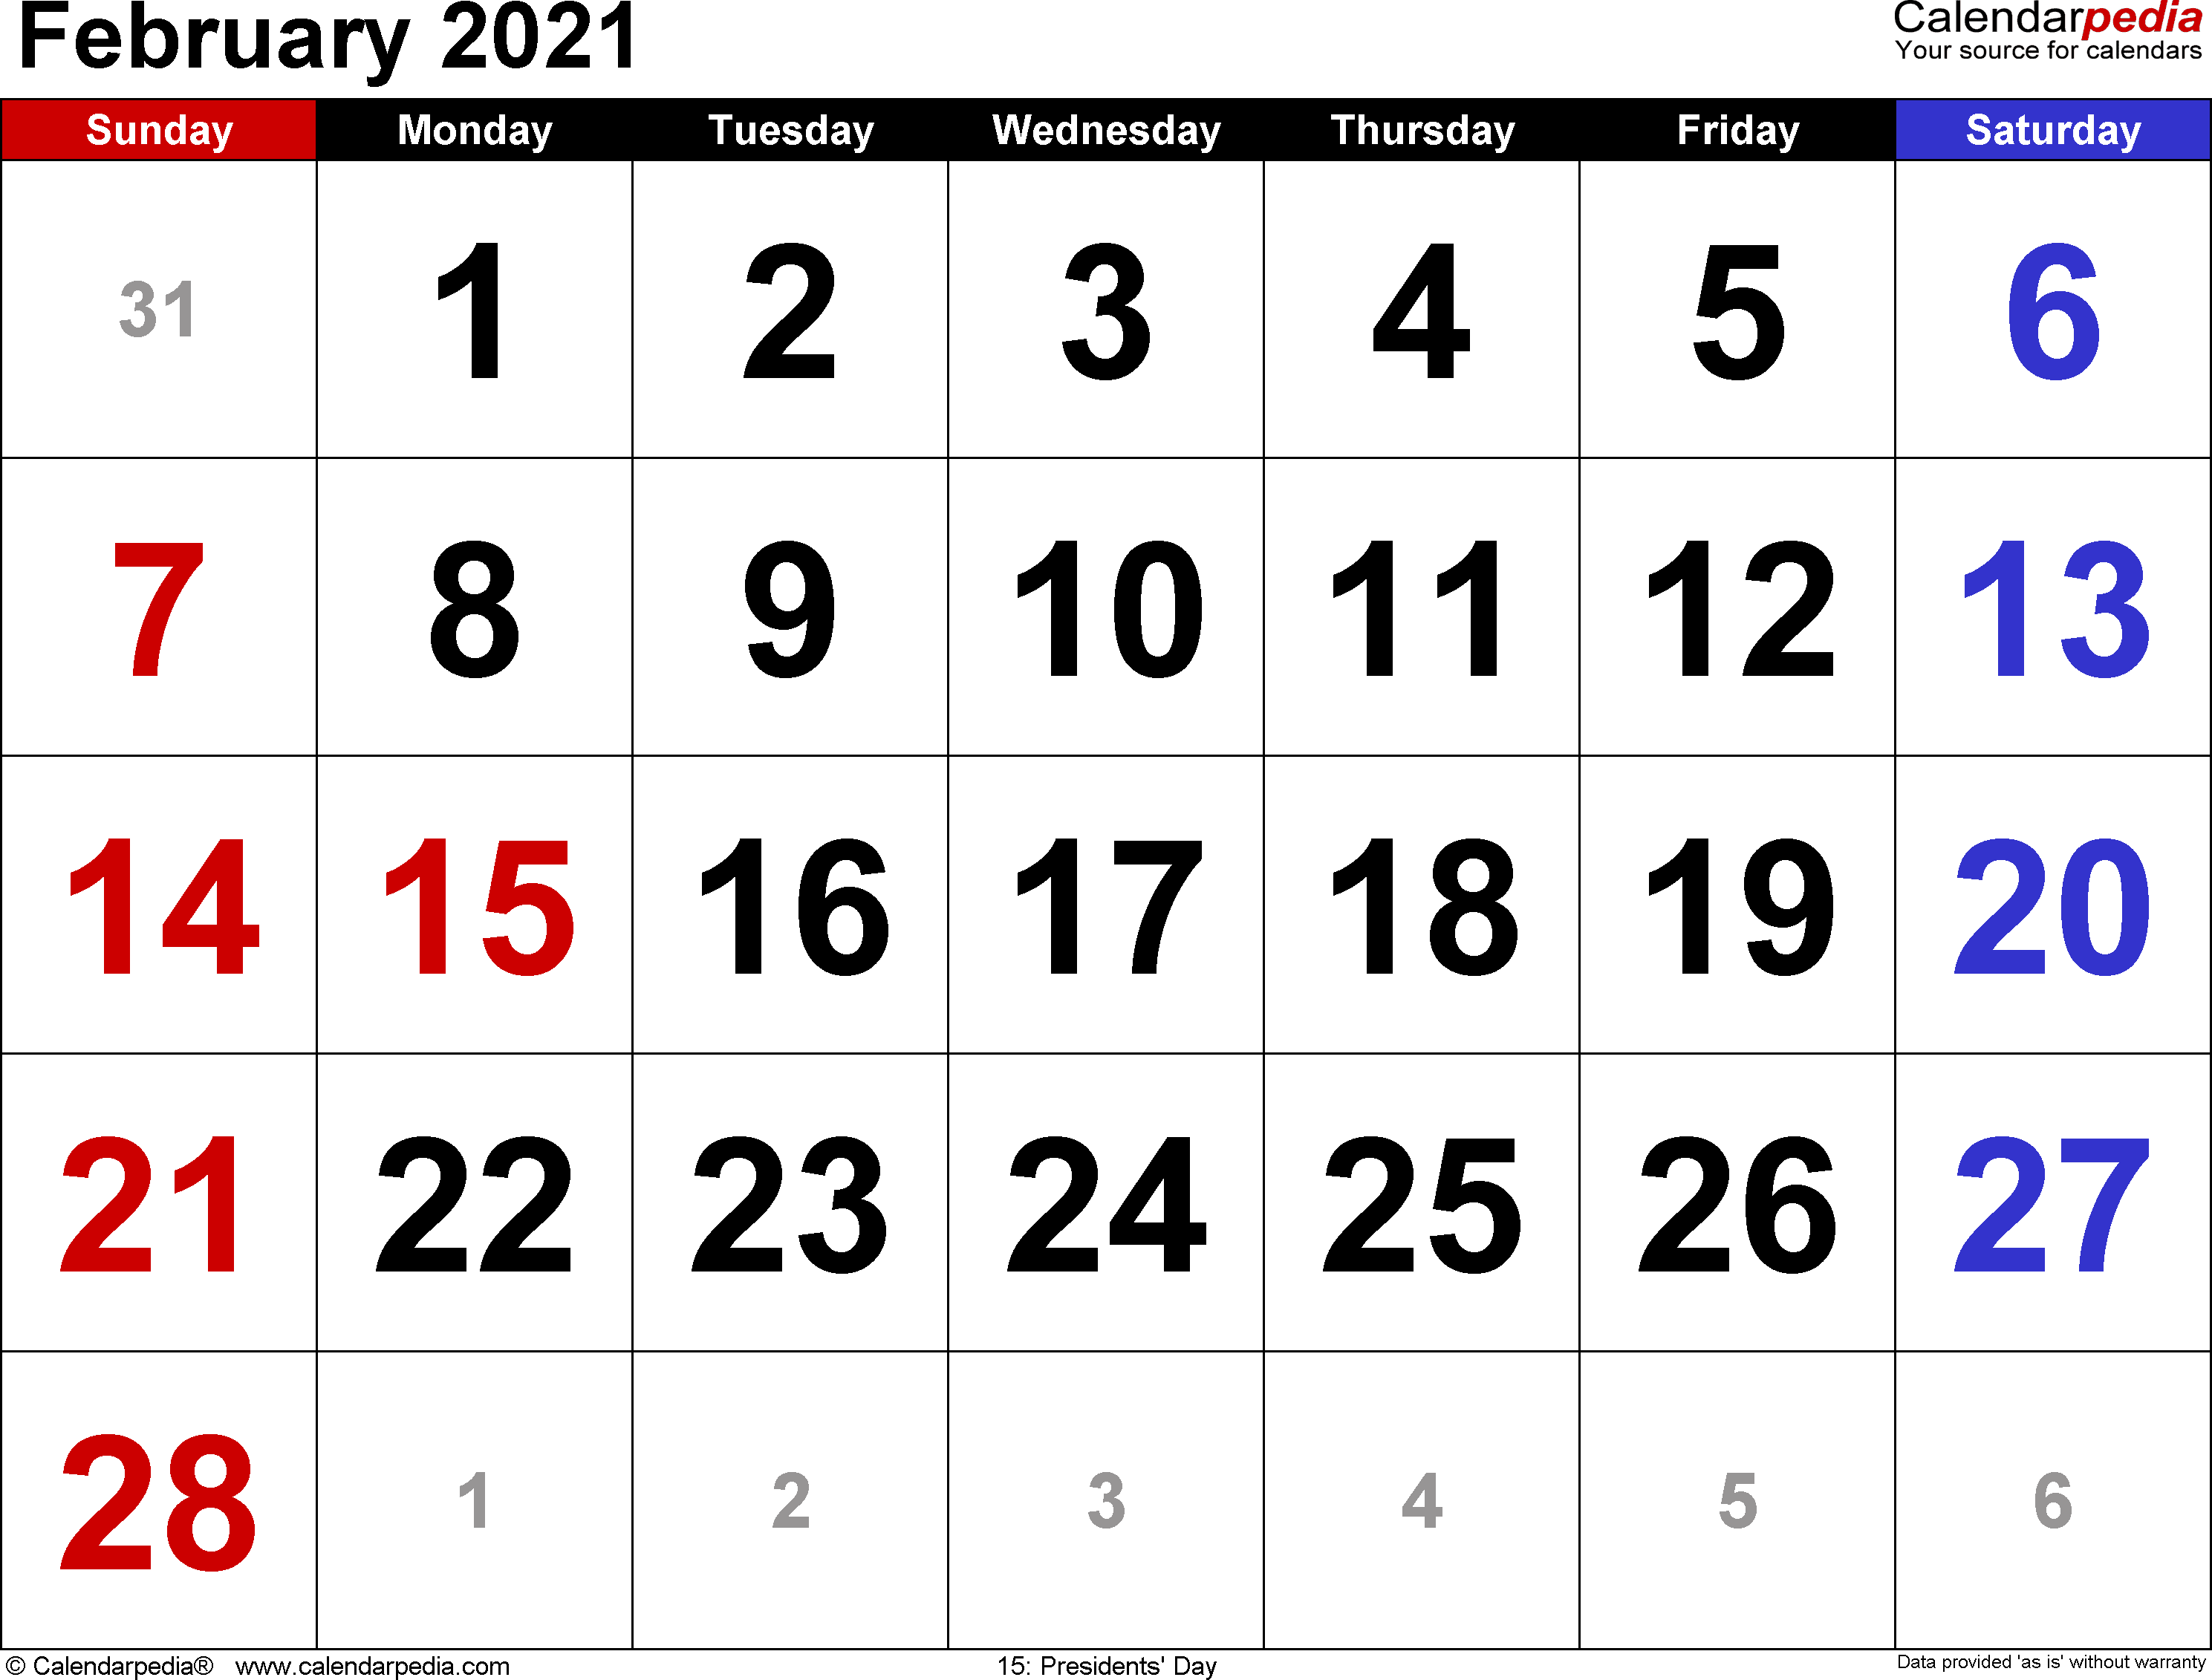 February 2021 Calendars for Word, Excel & PDF